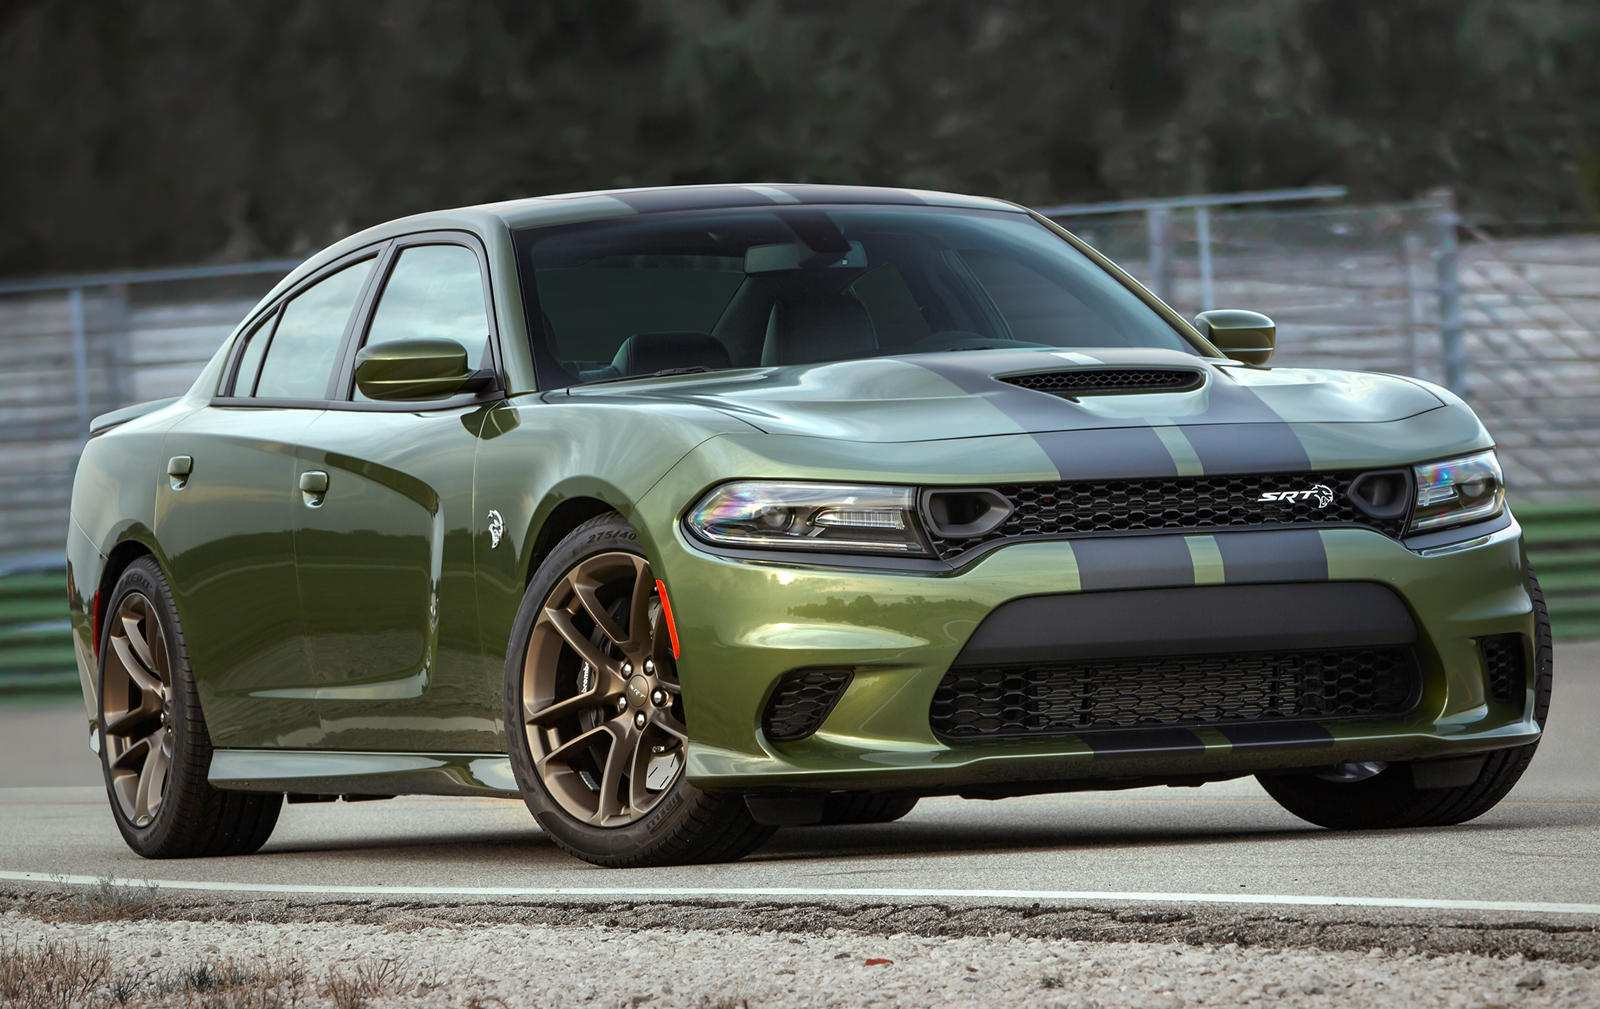 51 A 2020 Dodge Charger First Drive